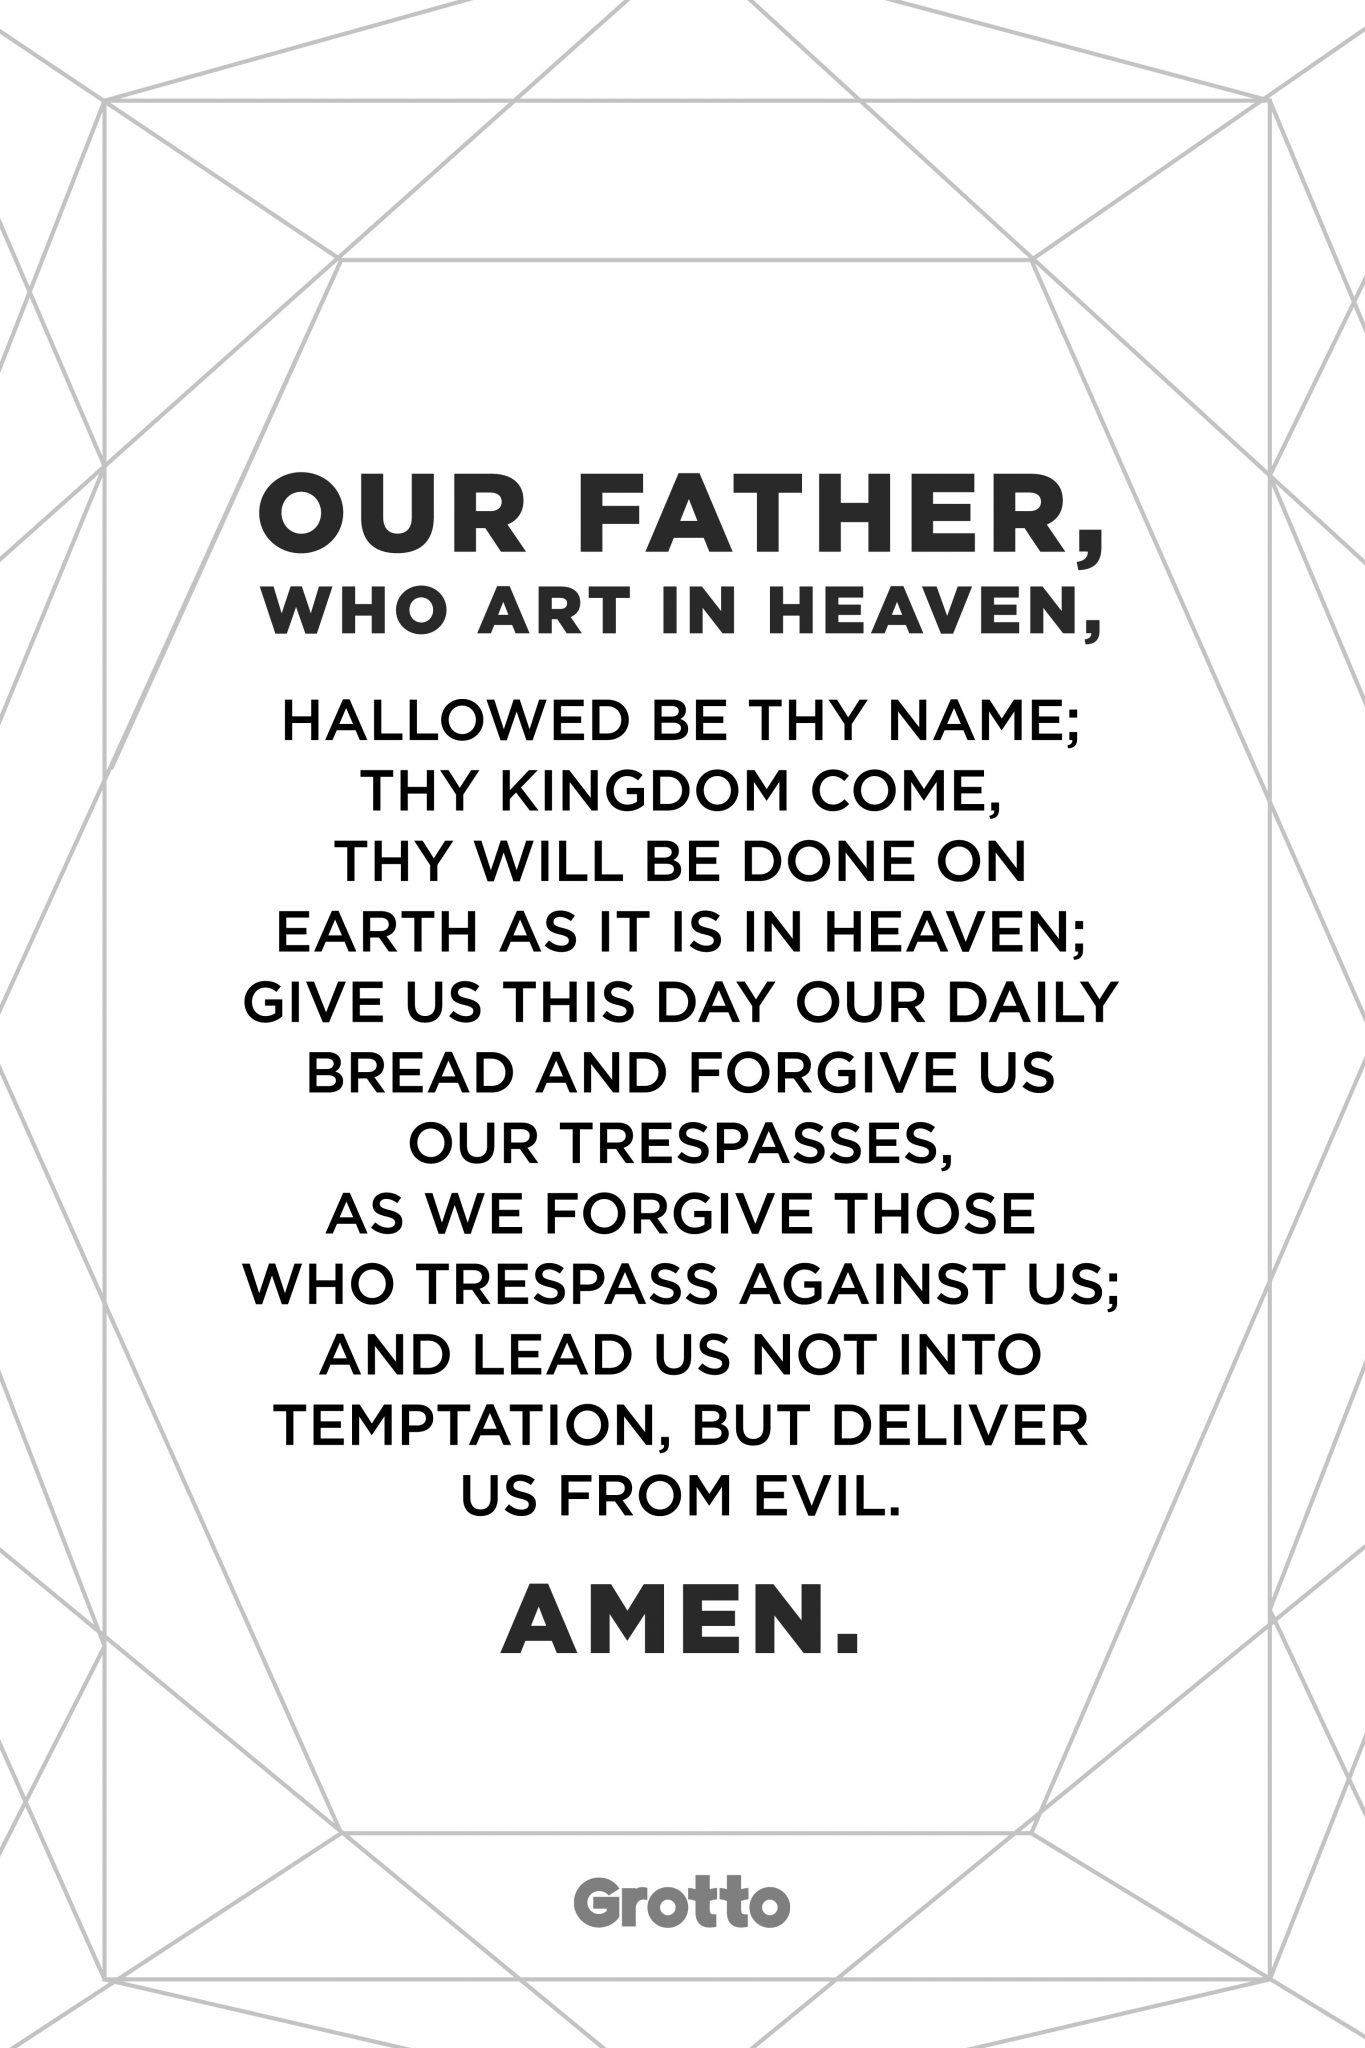 """Grotto prayer graphic of the """"Our Father"""" prayer. The graphic reads, """"Our Father, who art in heaven, hallowed be thy name; thy kingdom come, thy will be done on Earth as it is in heaven; give us this day our daily bread and forgive us our trespasses, as we forgive those who trespass against us; and lead us not into temptation, but deliver us from evil. Amen."""""""